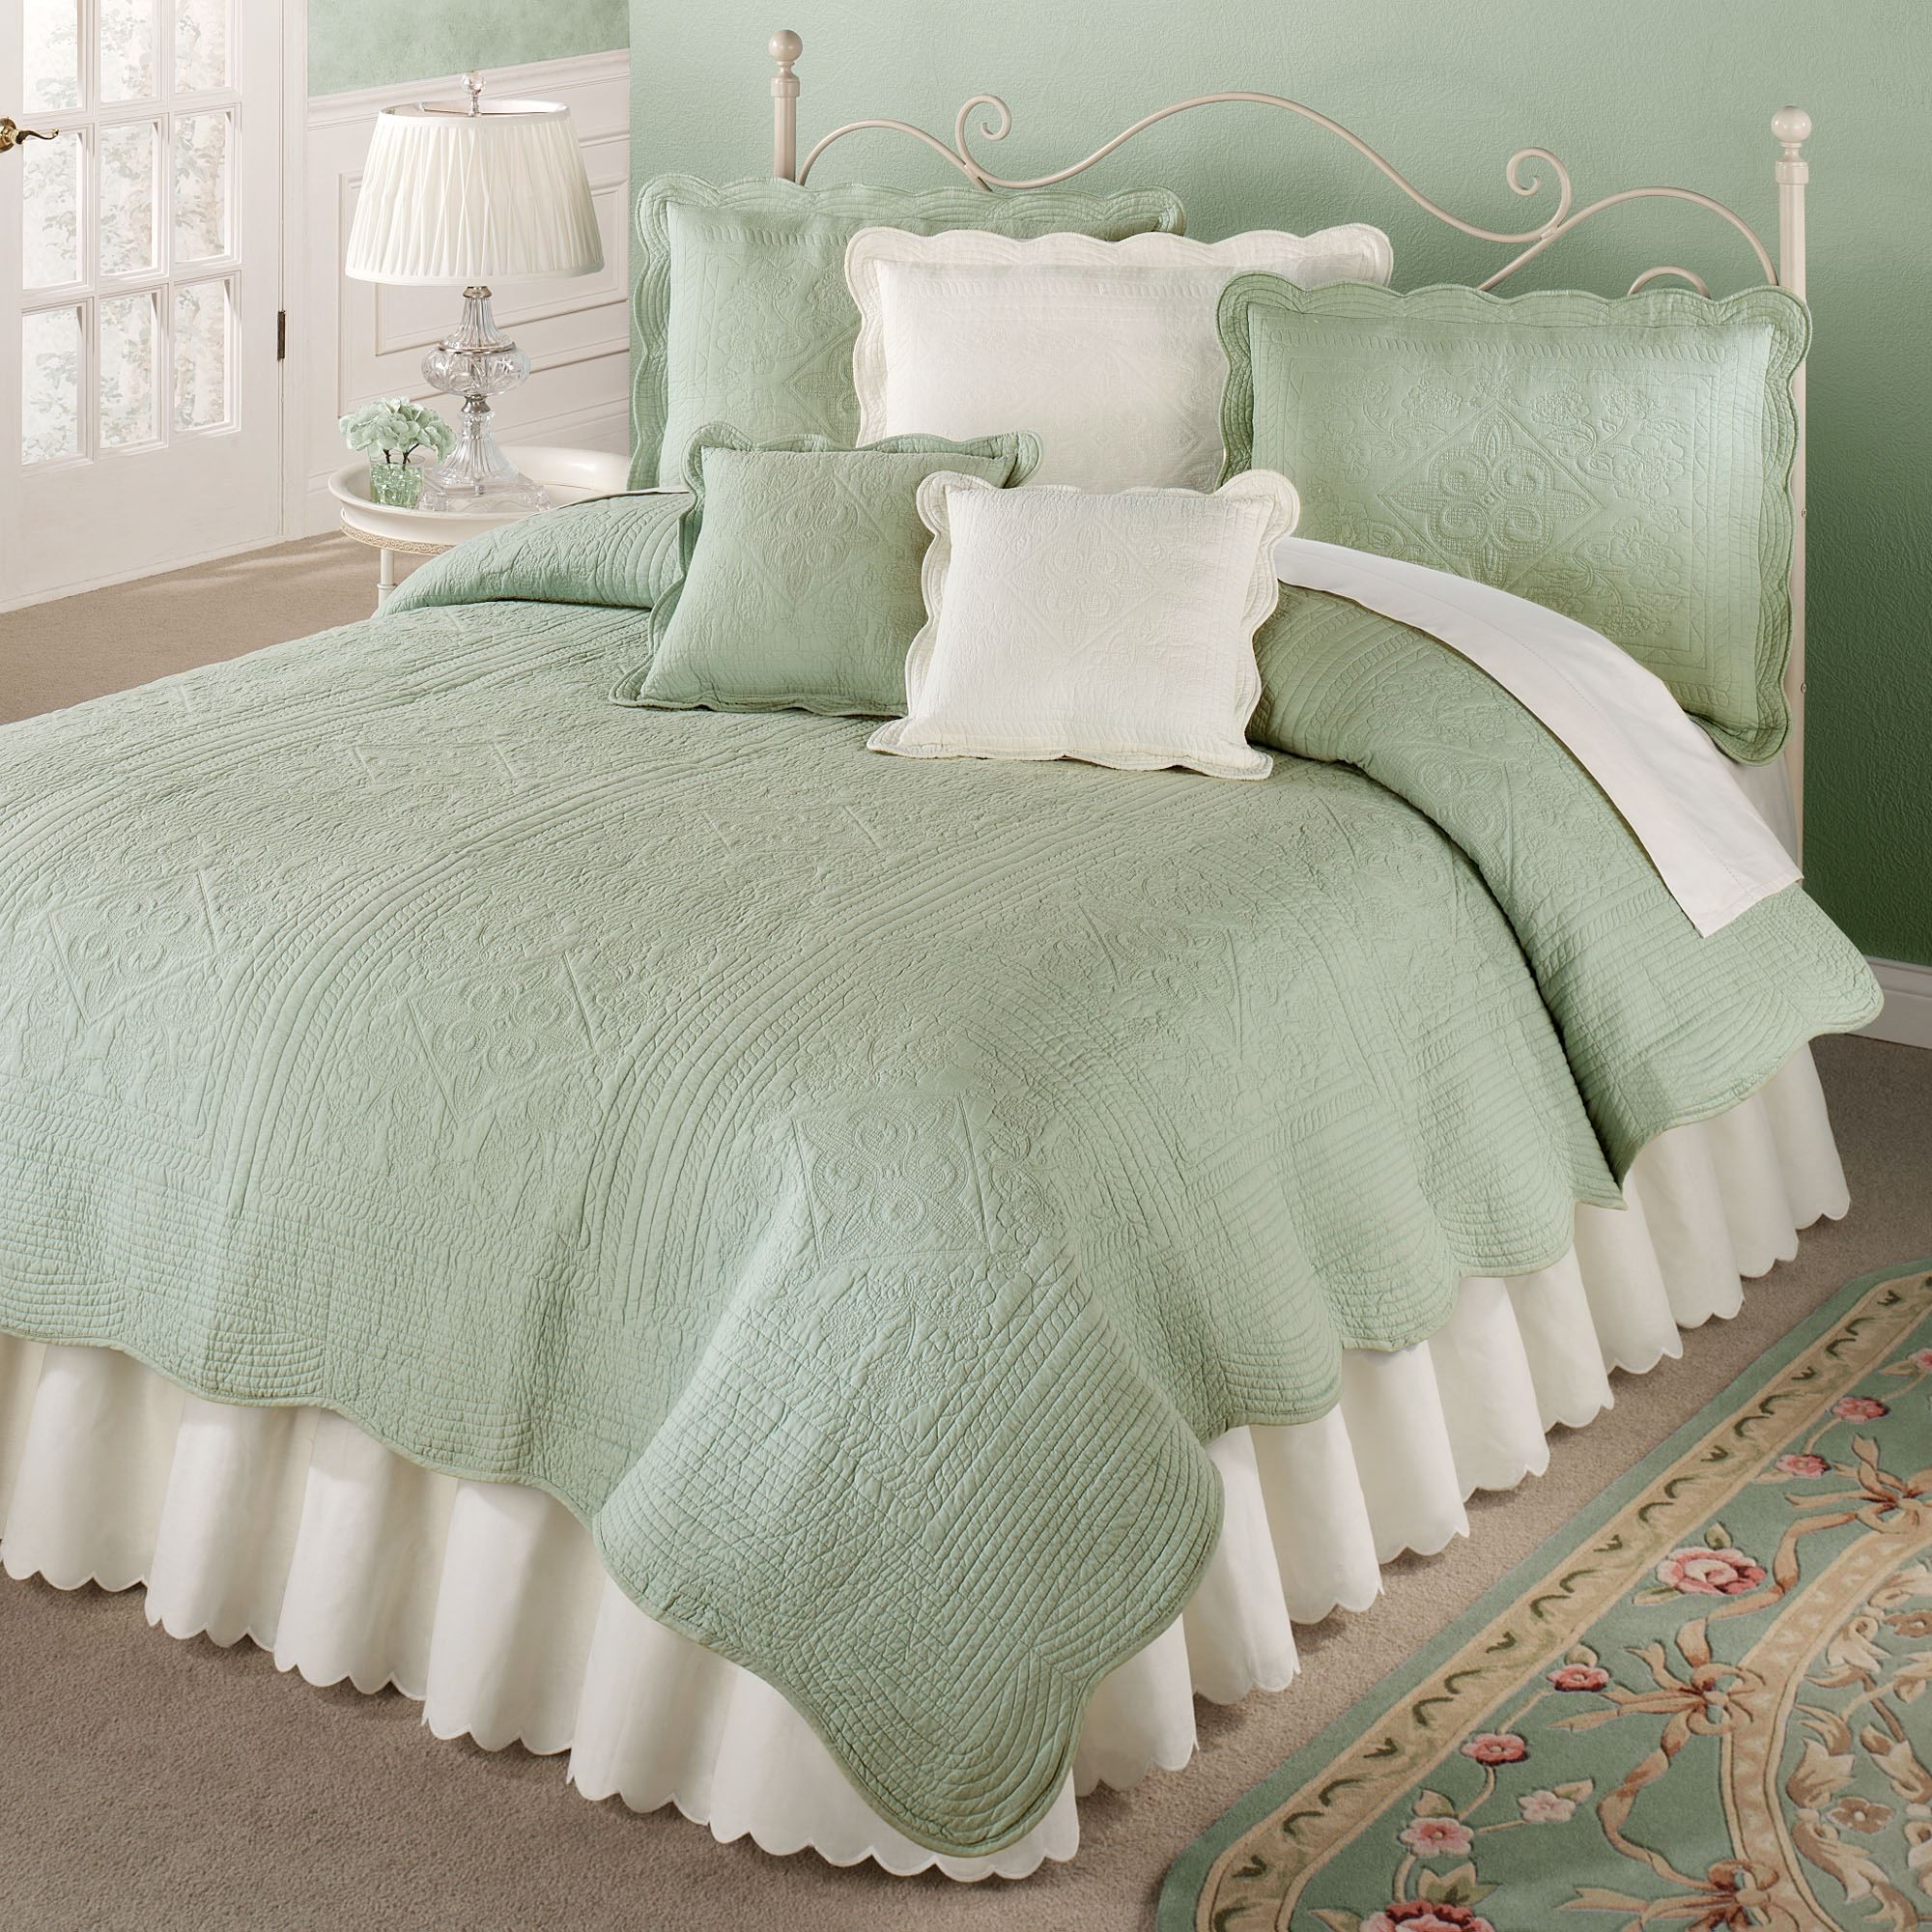 solid gardens set com ip bedding color better homes walmart piece comforter metallic duo